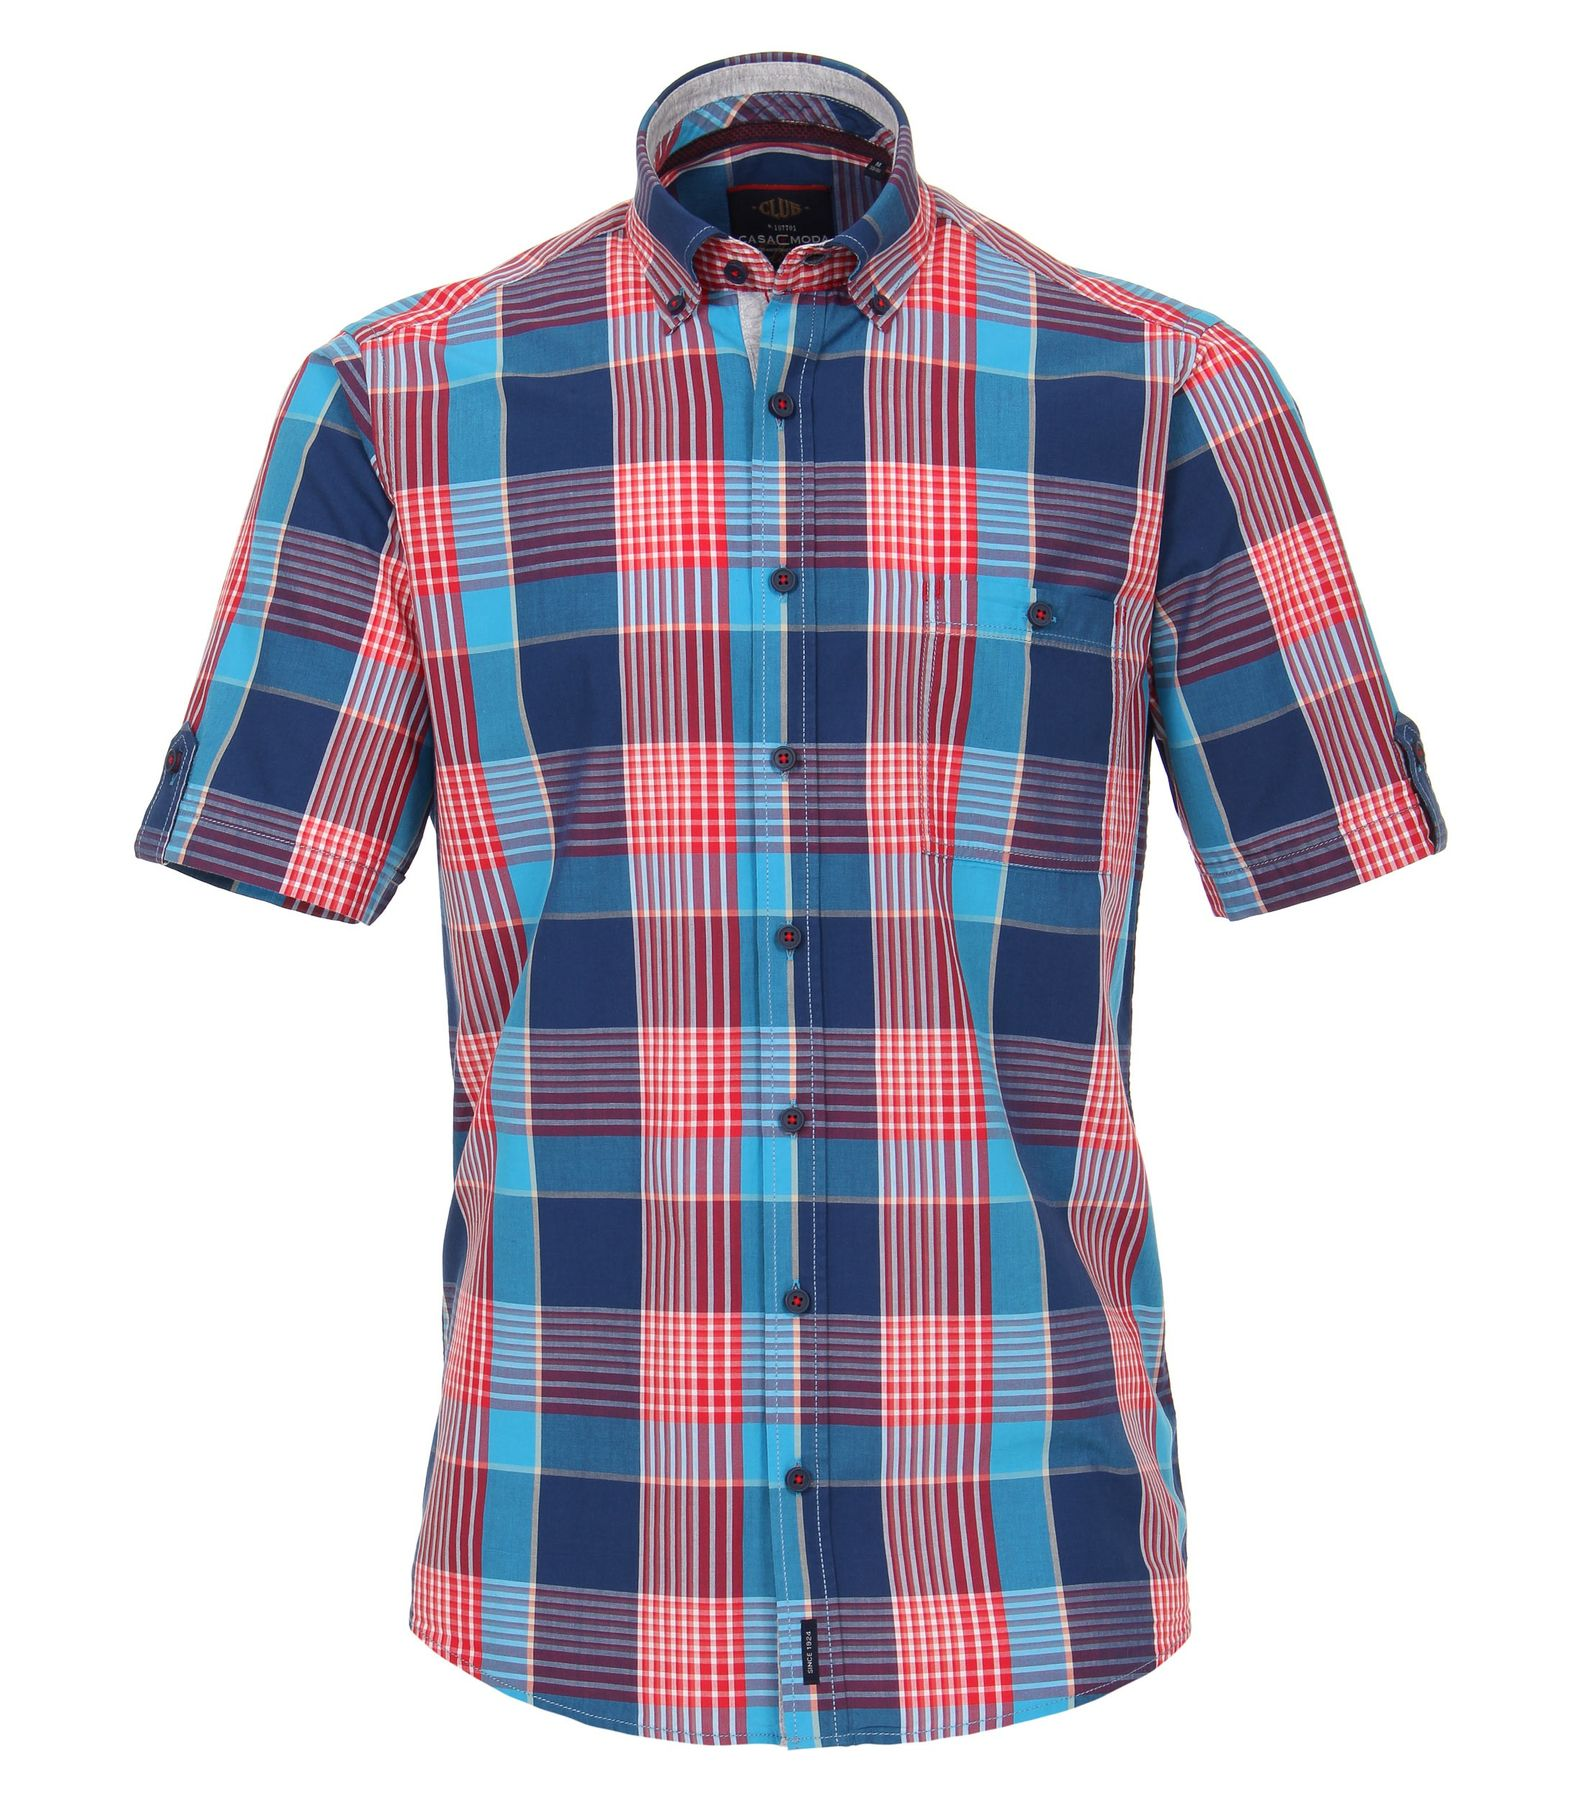 Casa Moda - Casual Fit - Herren Freizeit 1/2-Arm-Hemd in blau/rot mit Button-Down-Kragen (982974500)